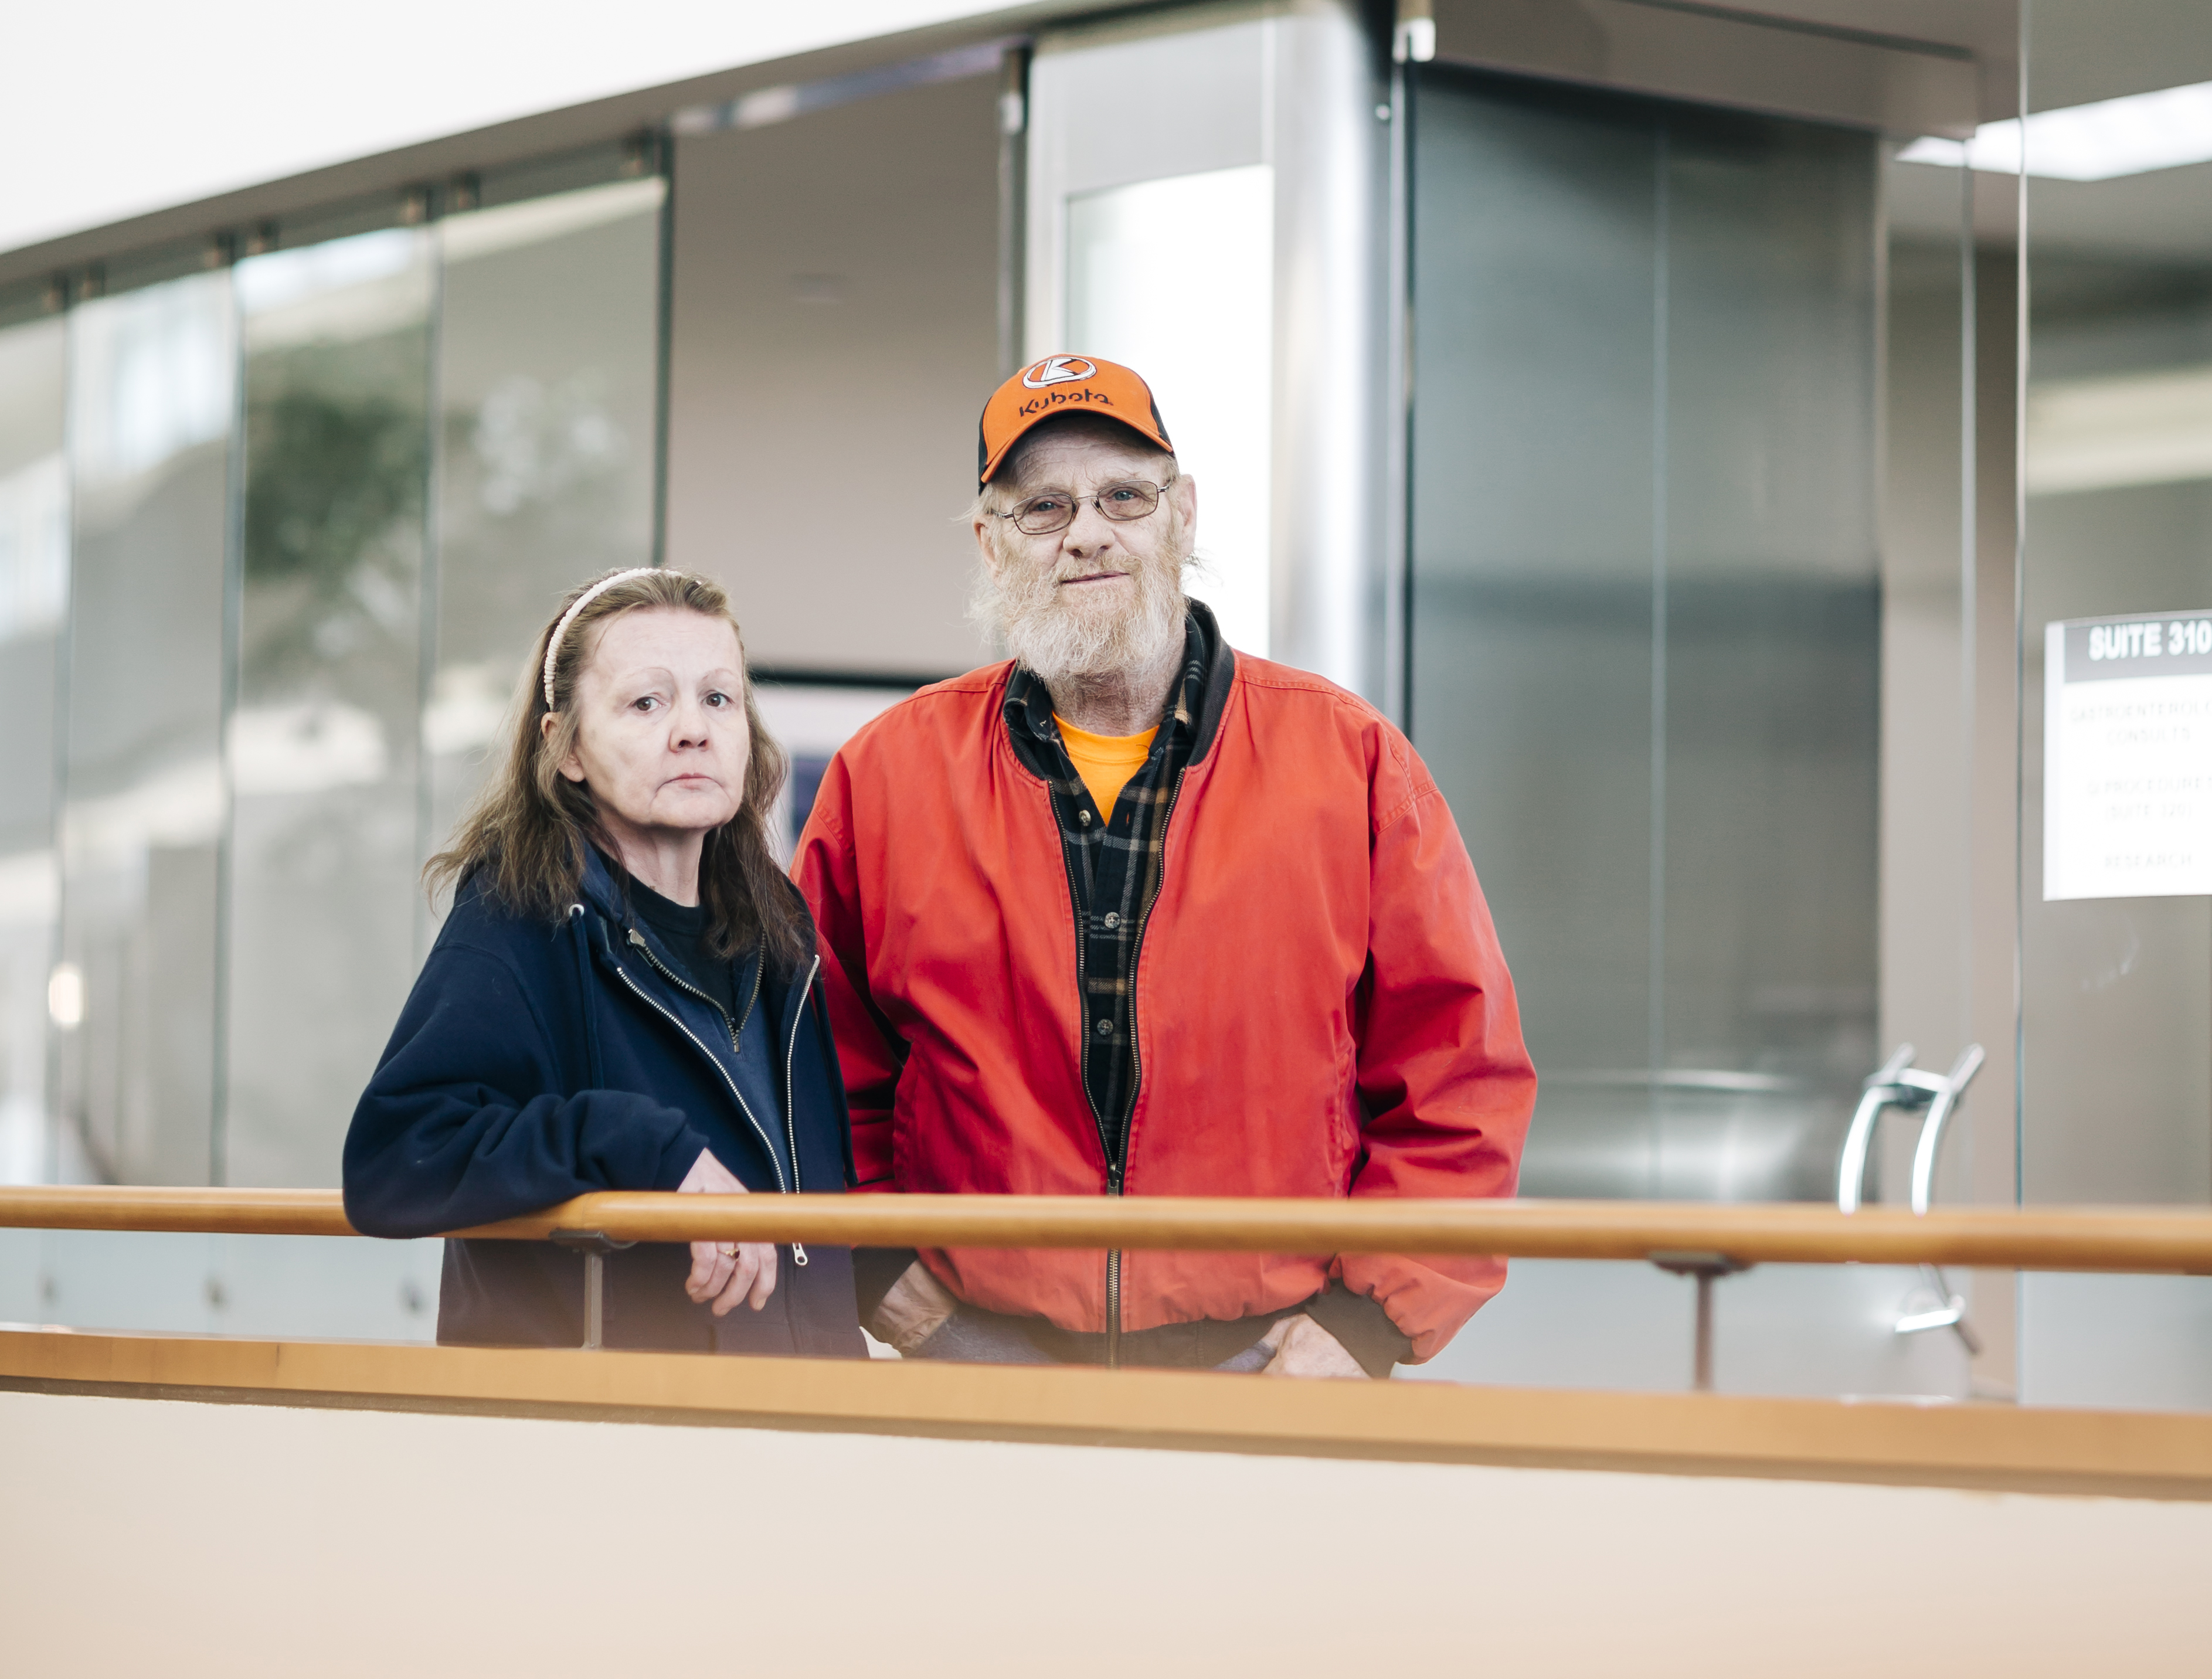 Debbie and Larry Moehnke of Washougal, Wash., faced bills of nearly $227,000, even after insurance, when she suffered a heart attack and spent a month at Portland's Oregon Health & Science University hospital last summer.